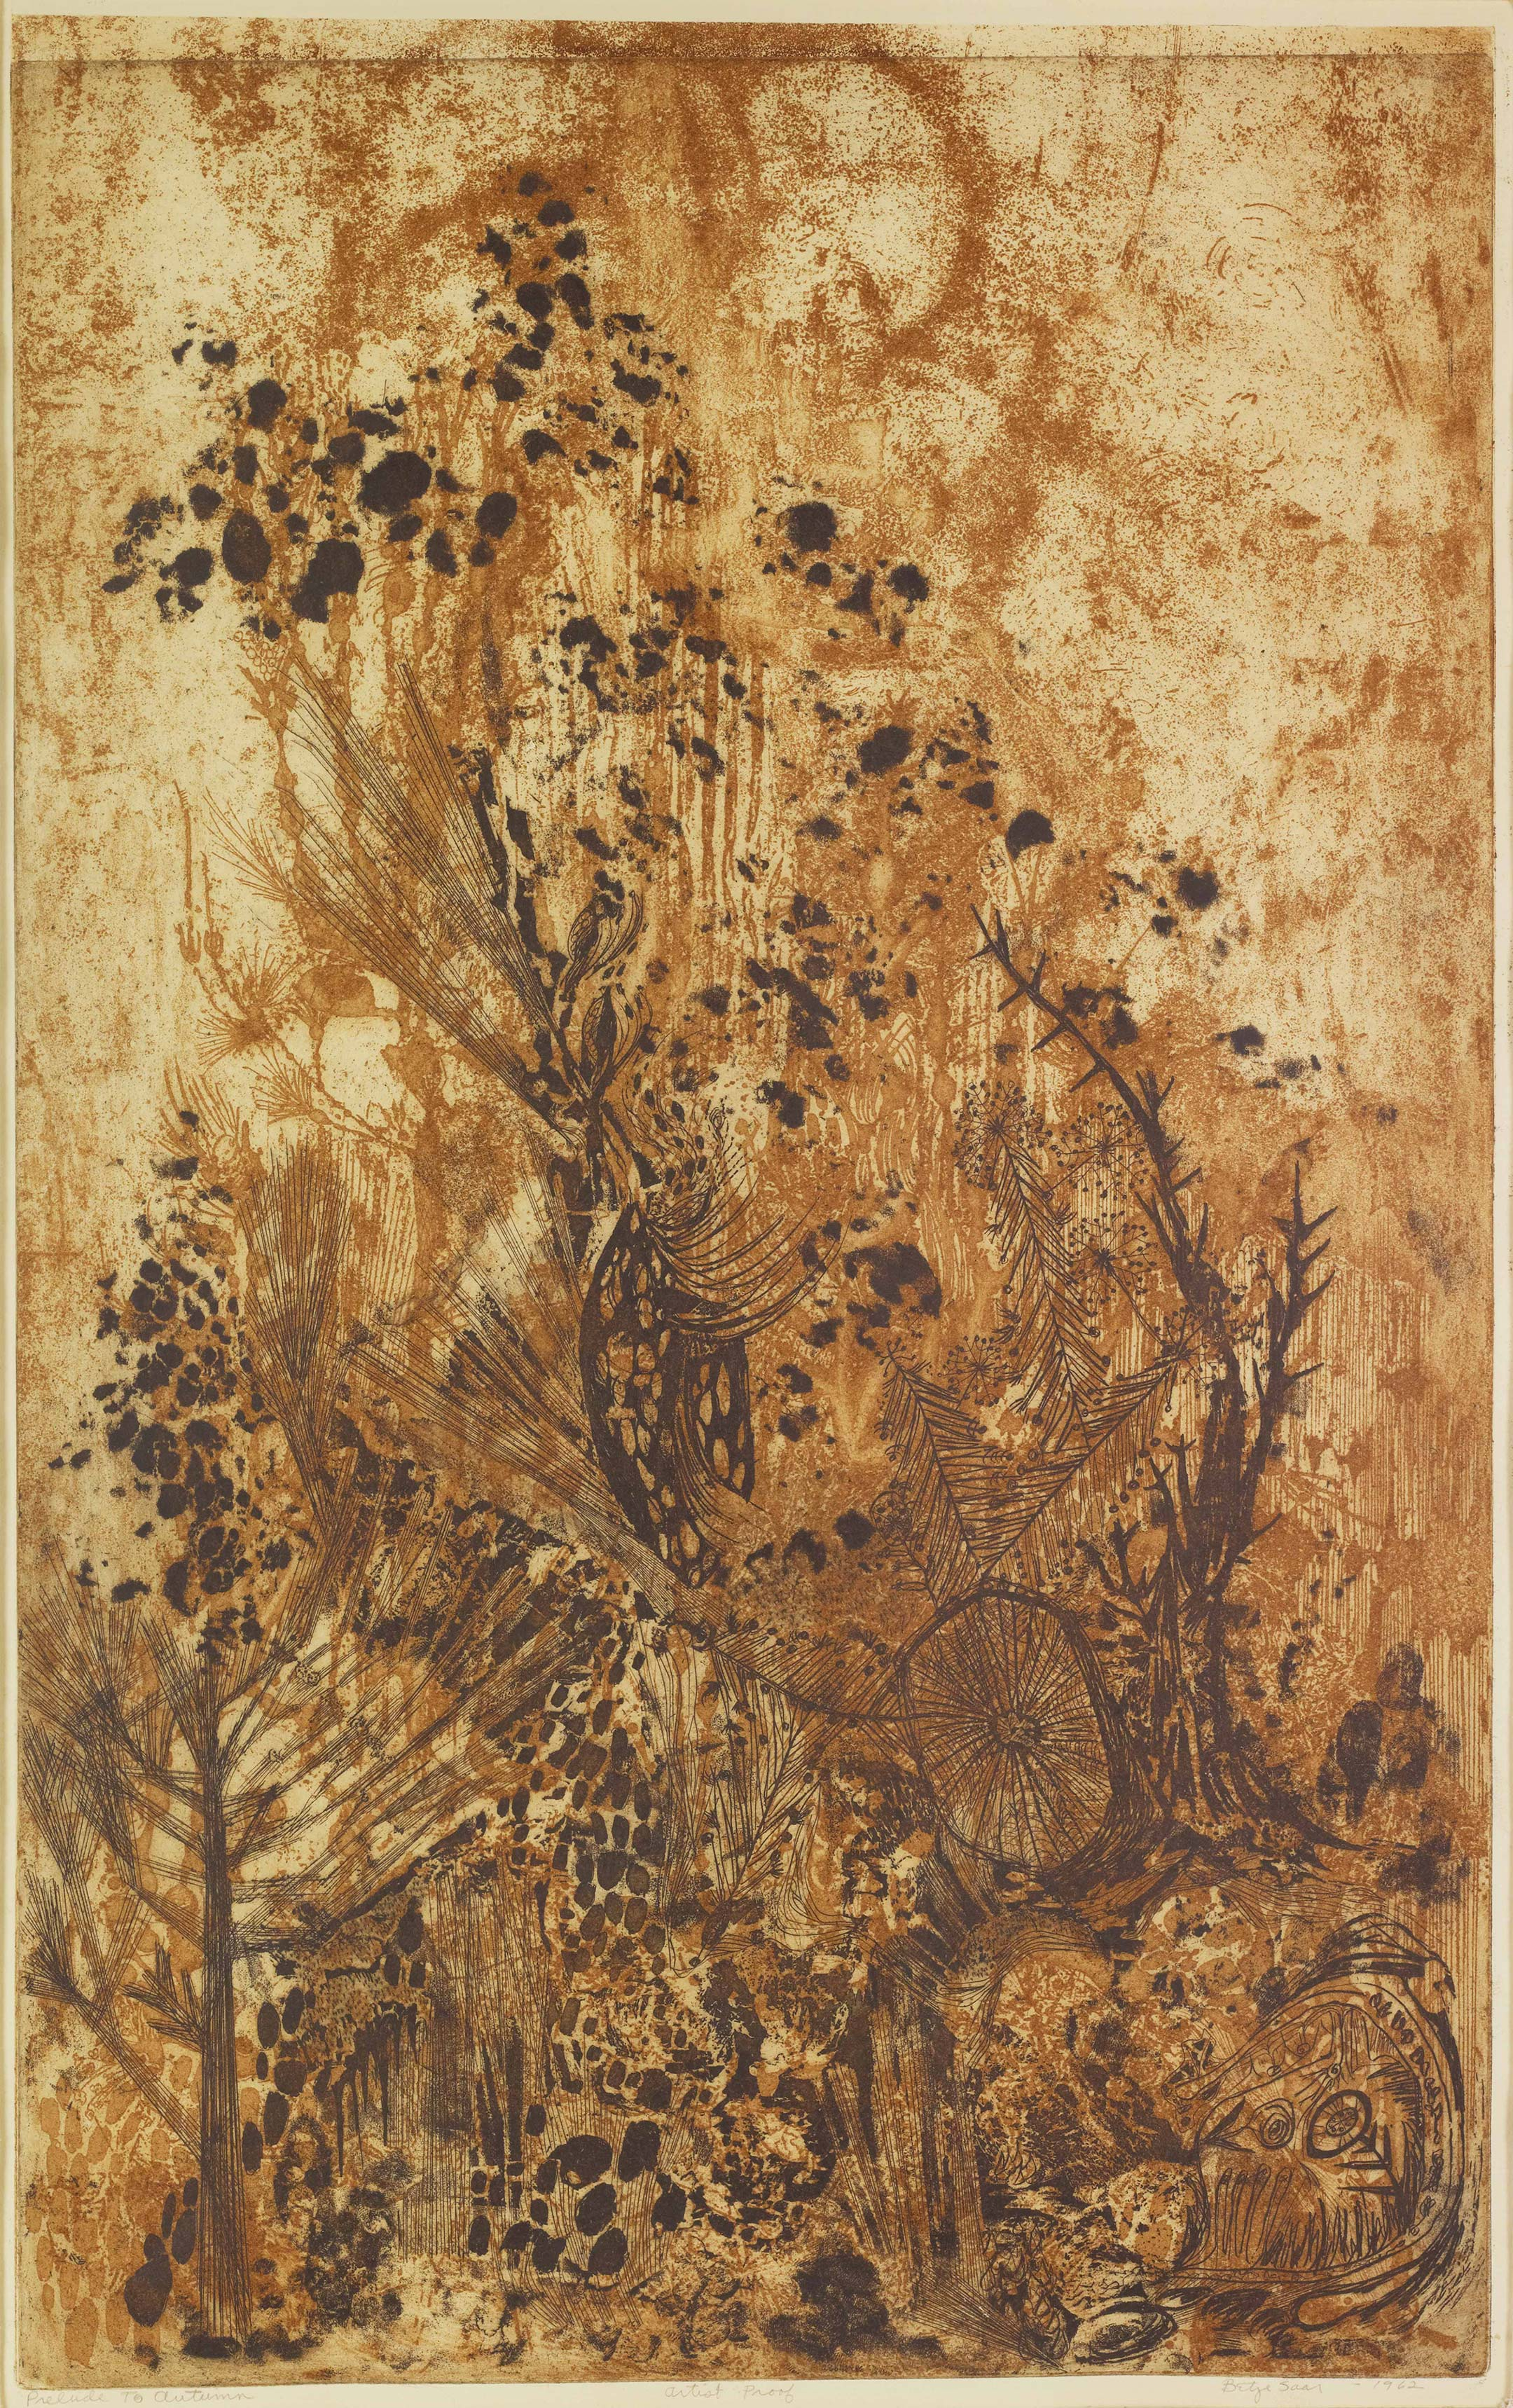 Prelude to Autumn, by Betye Saar, 1962